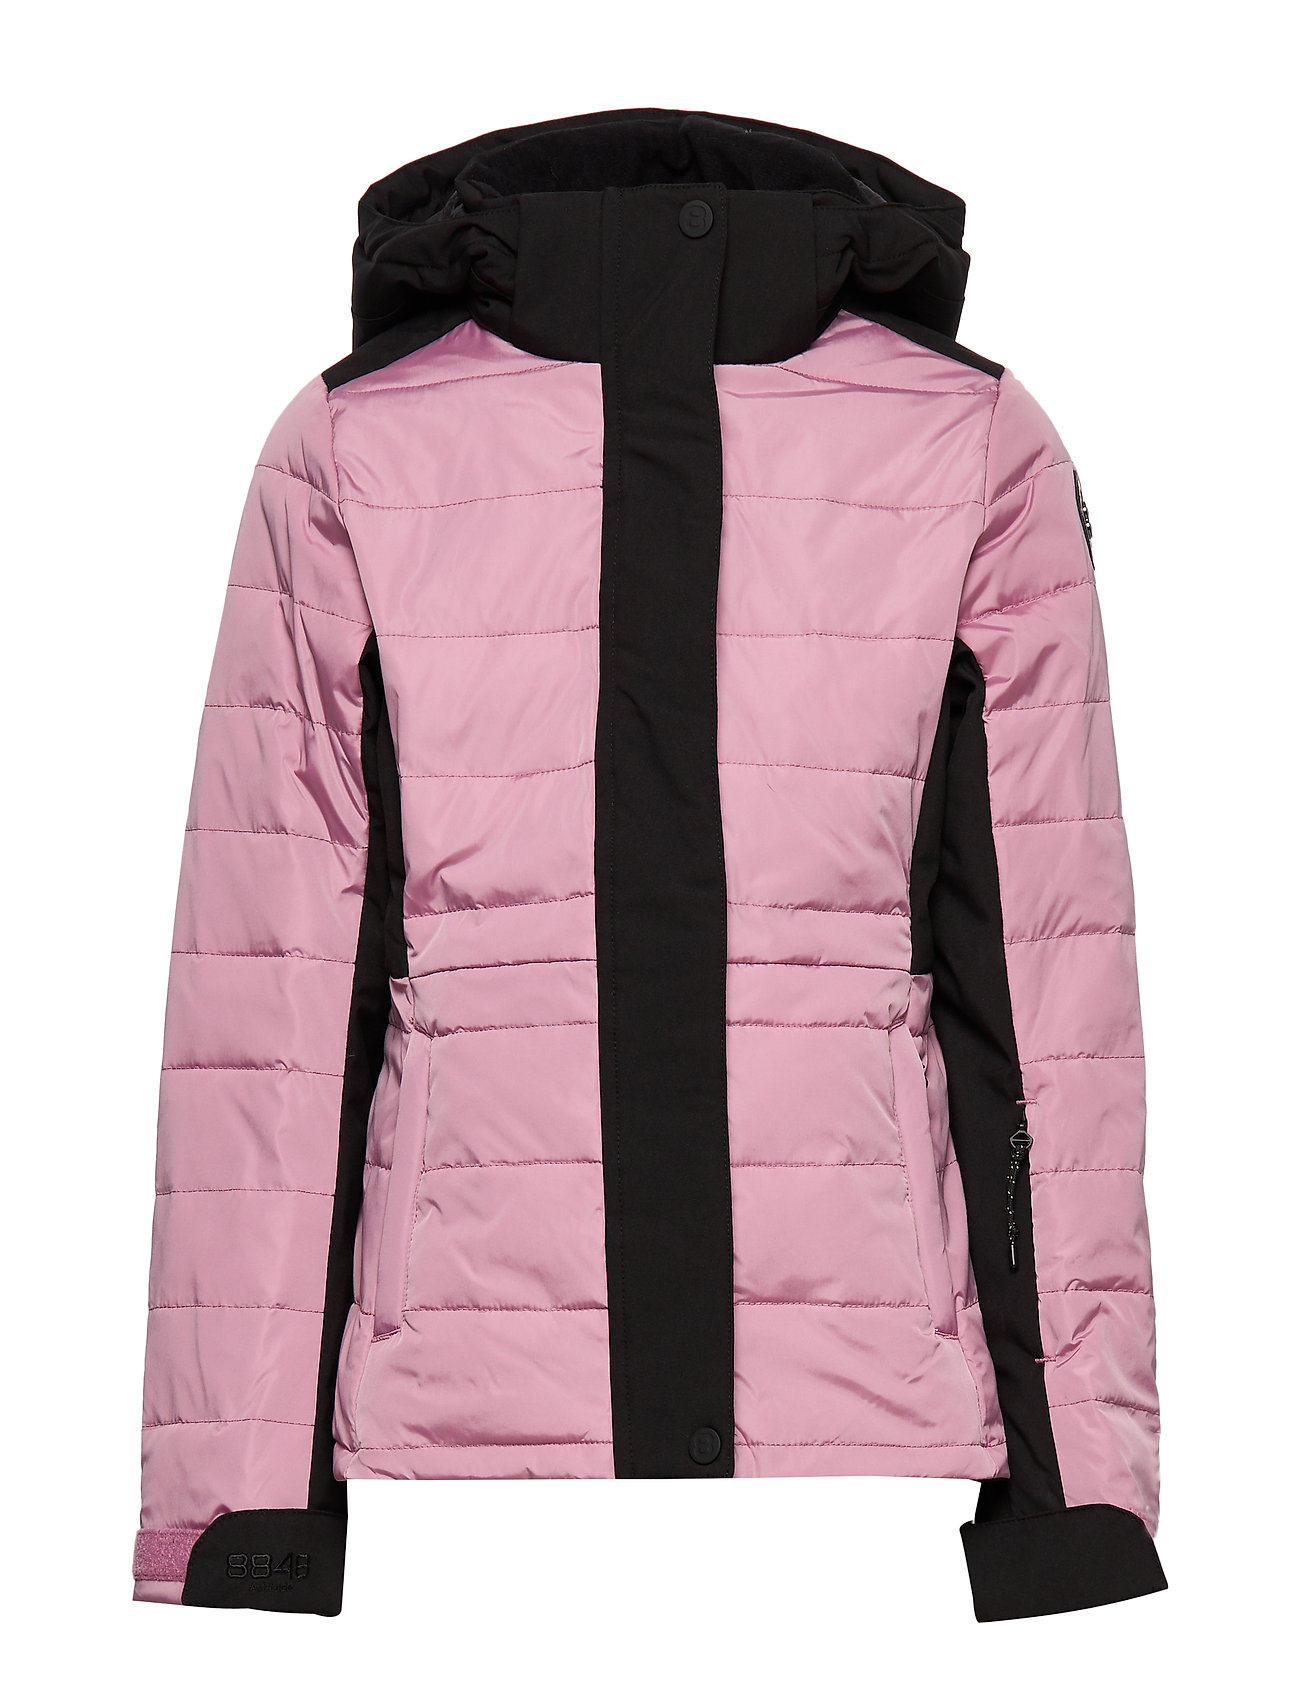 8848 Altitude Mini JR Jacket